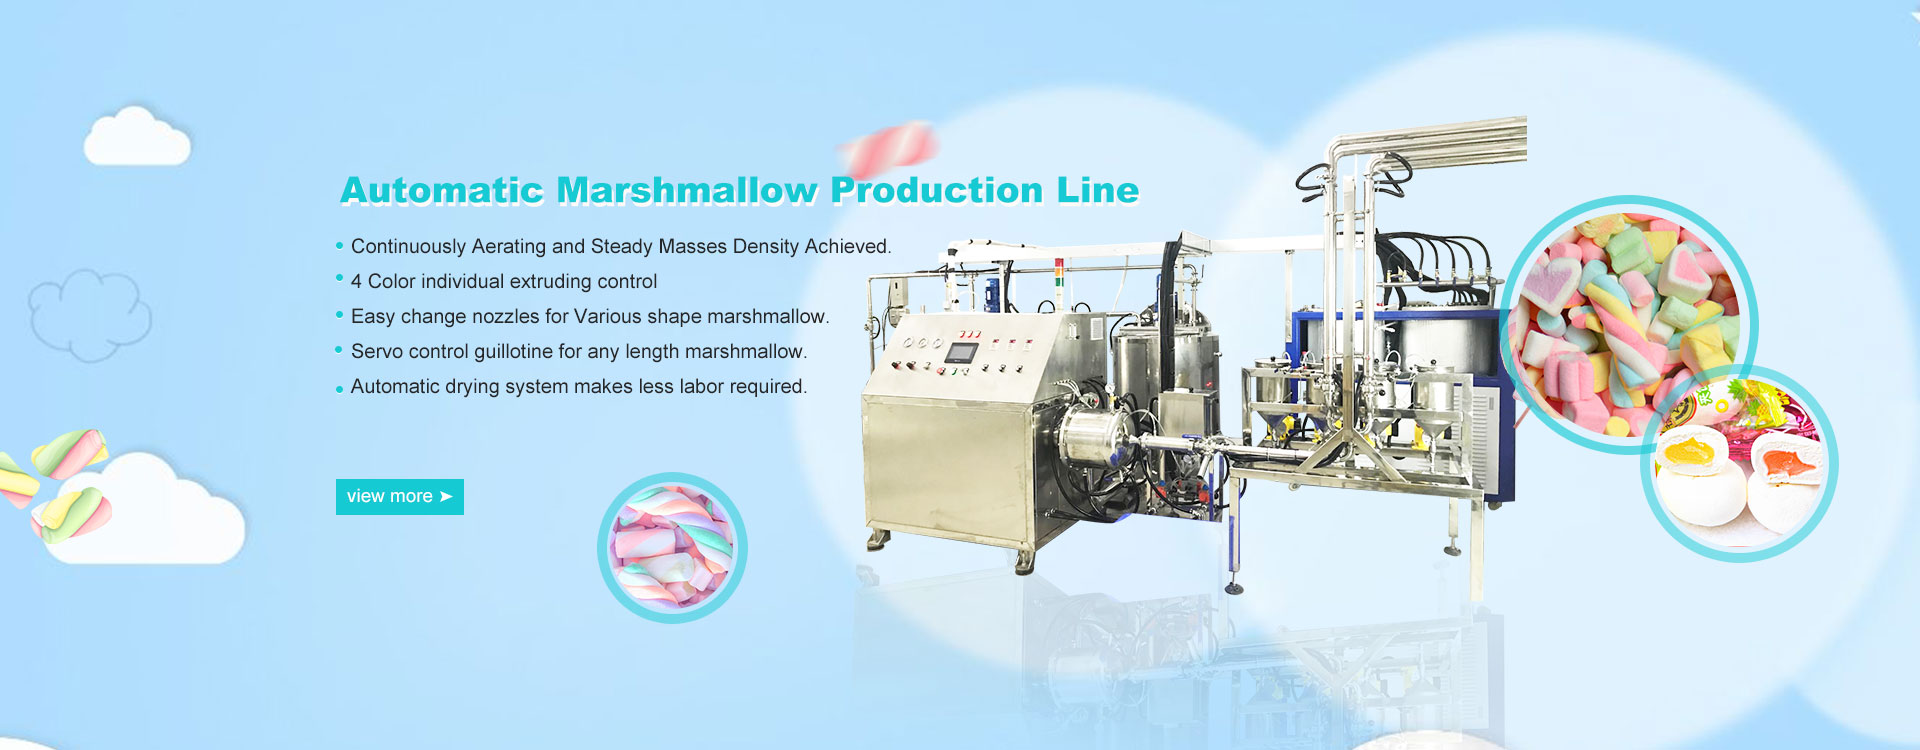 Automatic Marshmallow Production Line